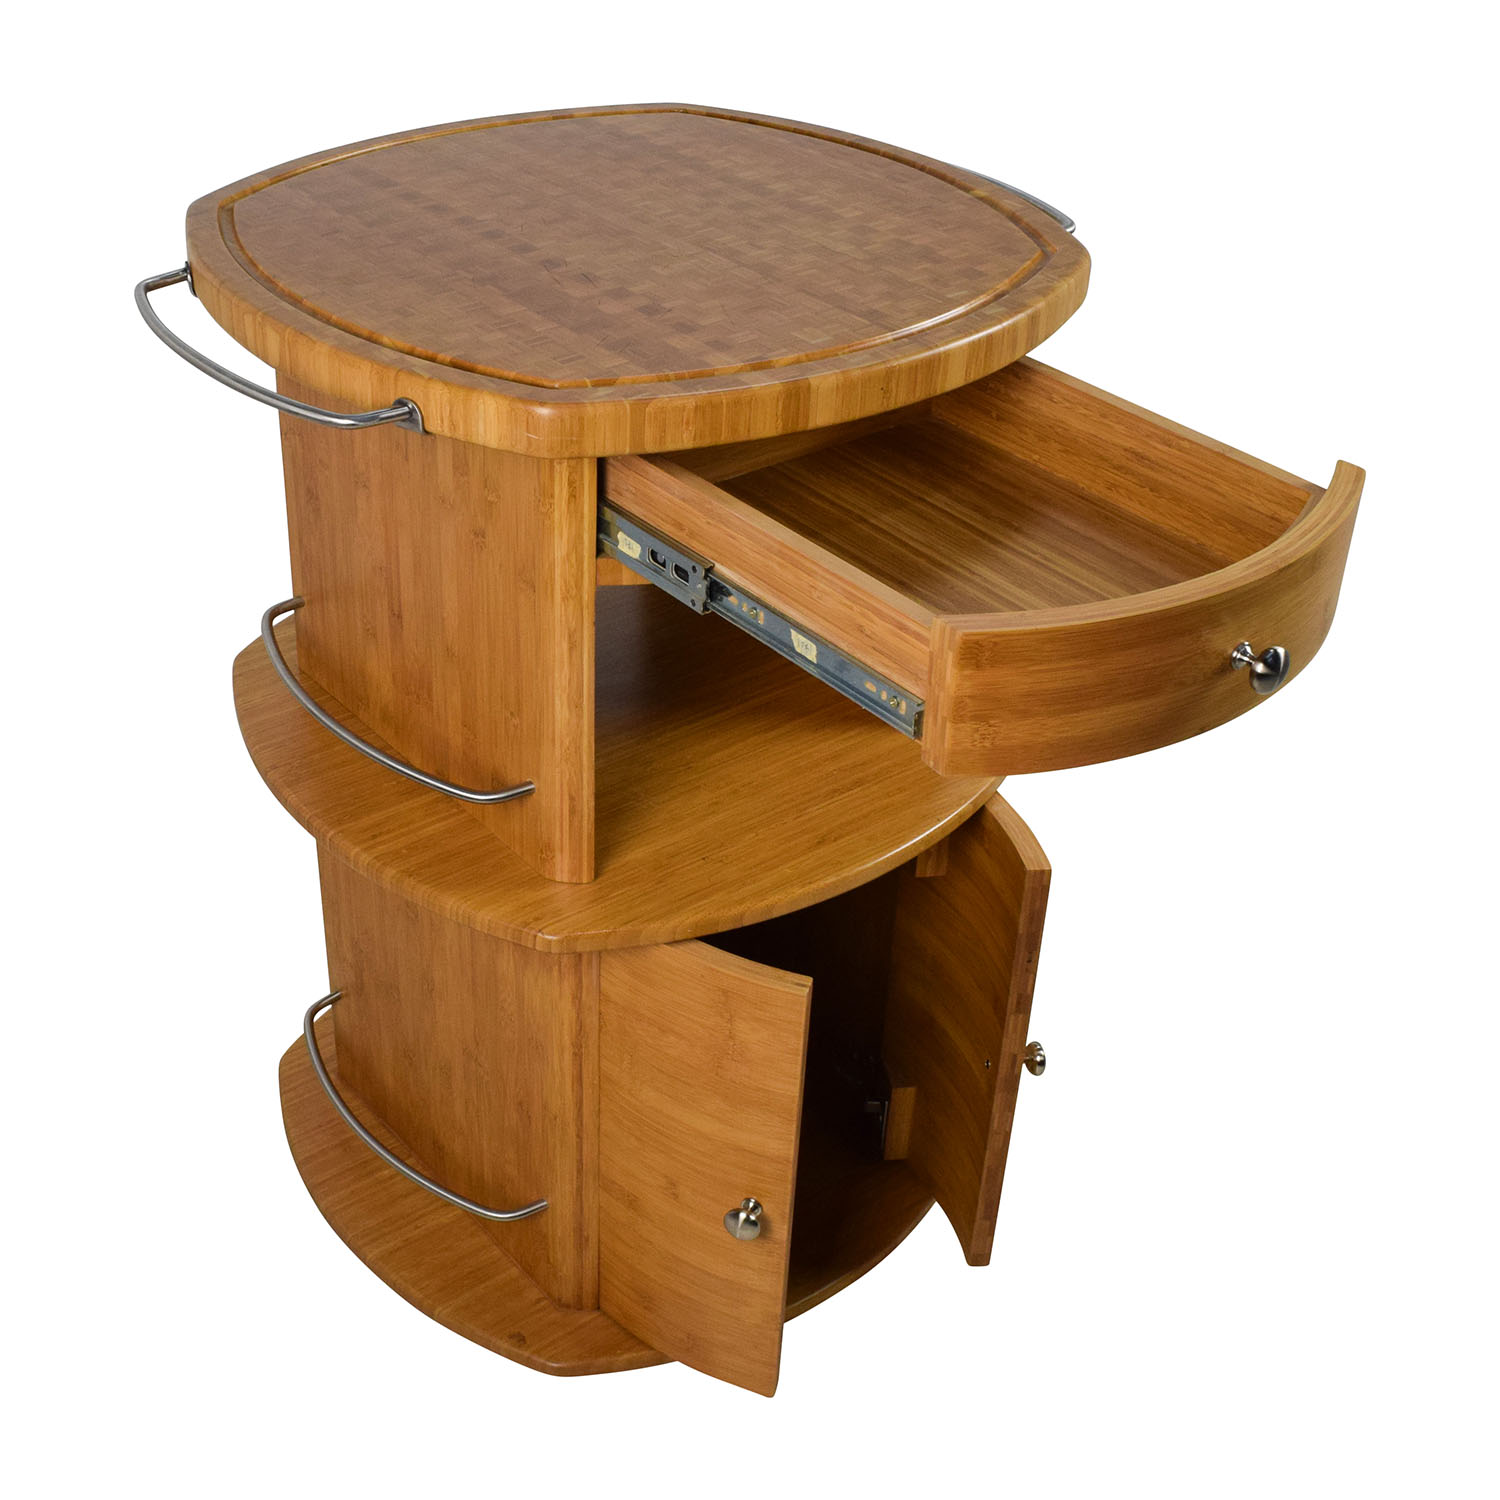 88 off unknown oval wood butcher block island tables